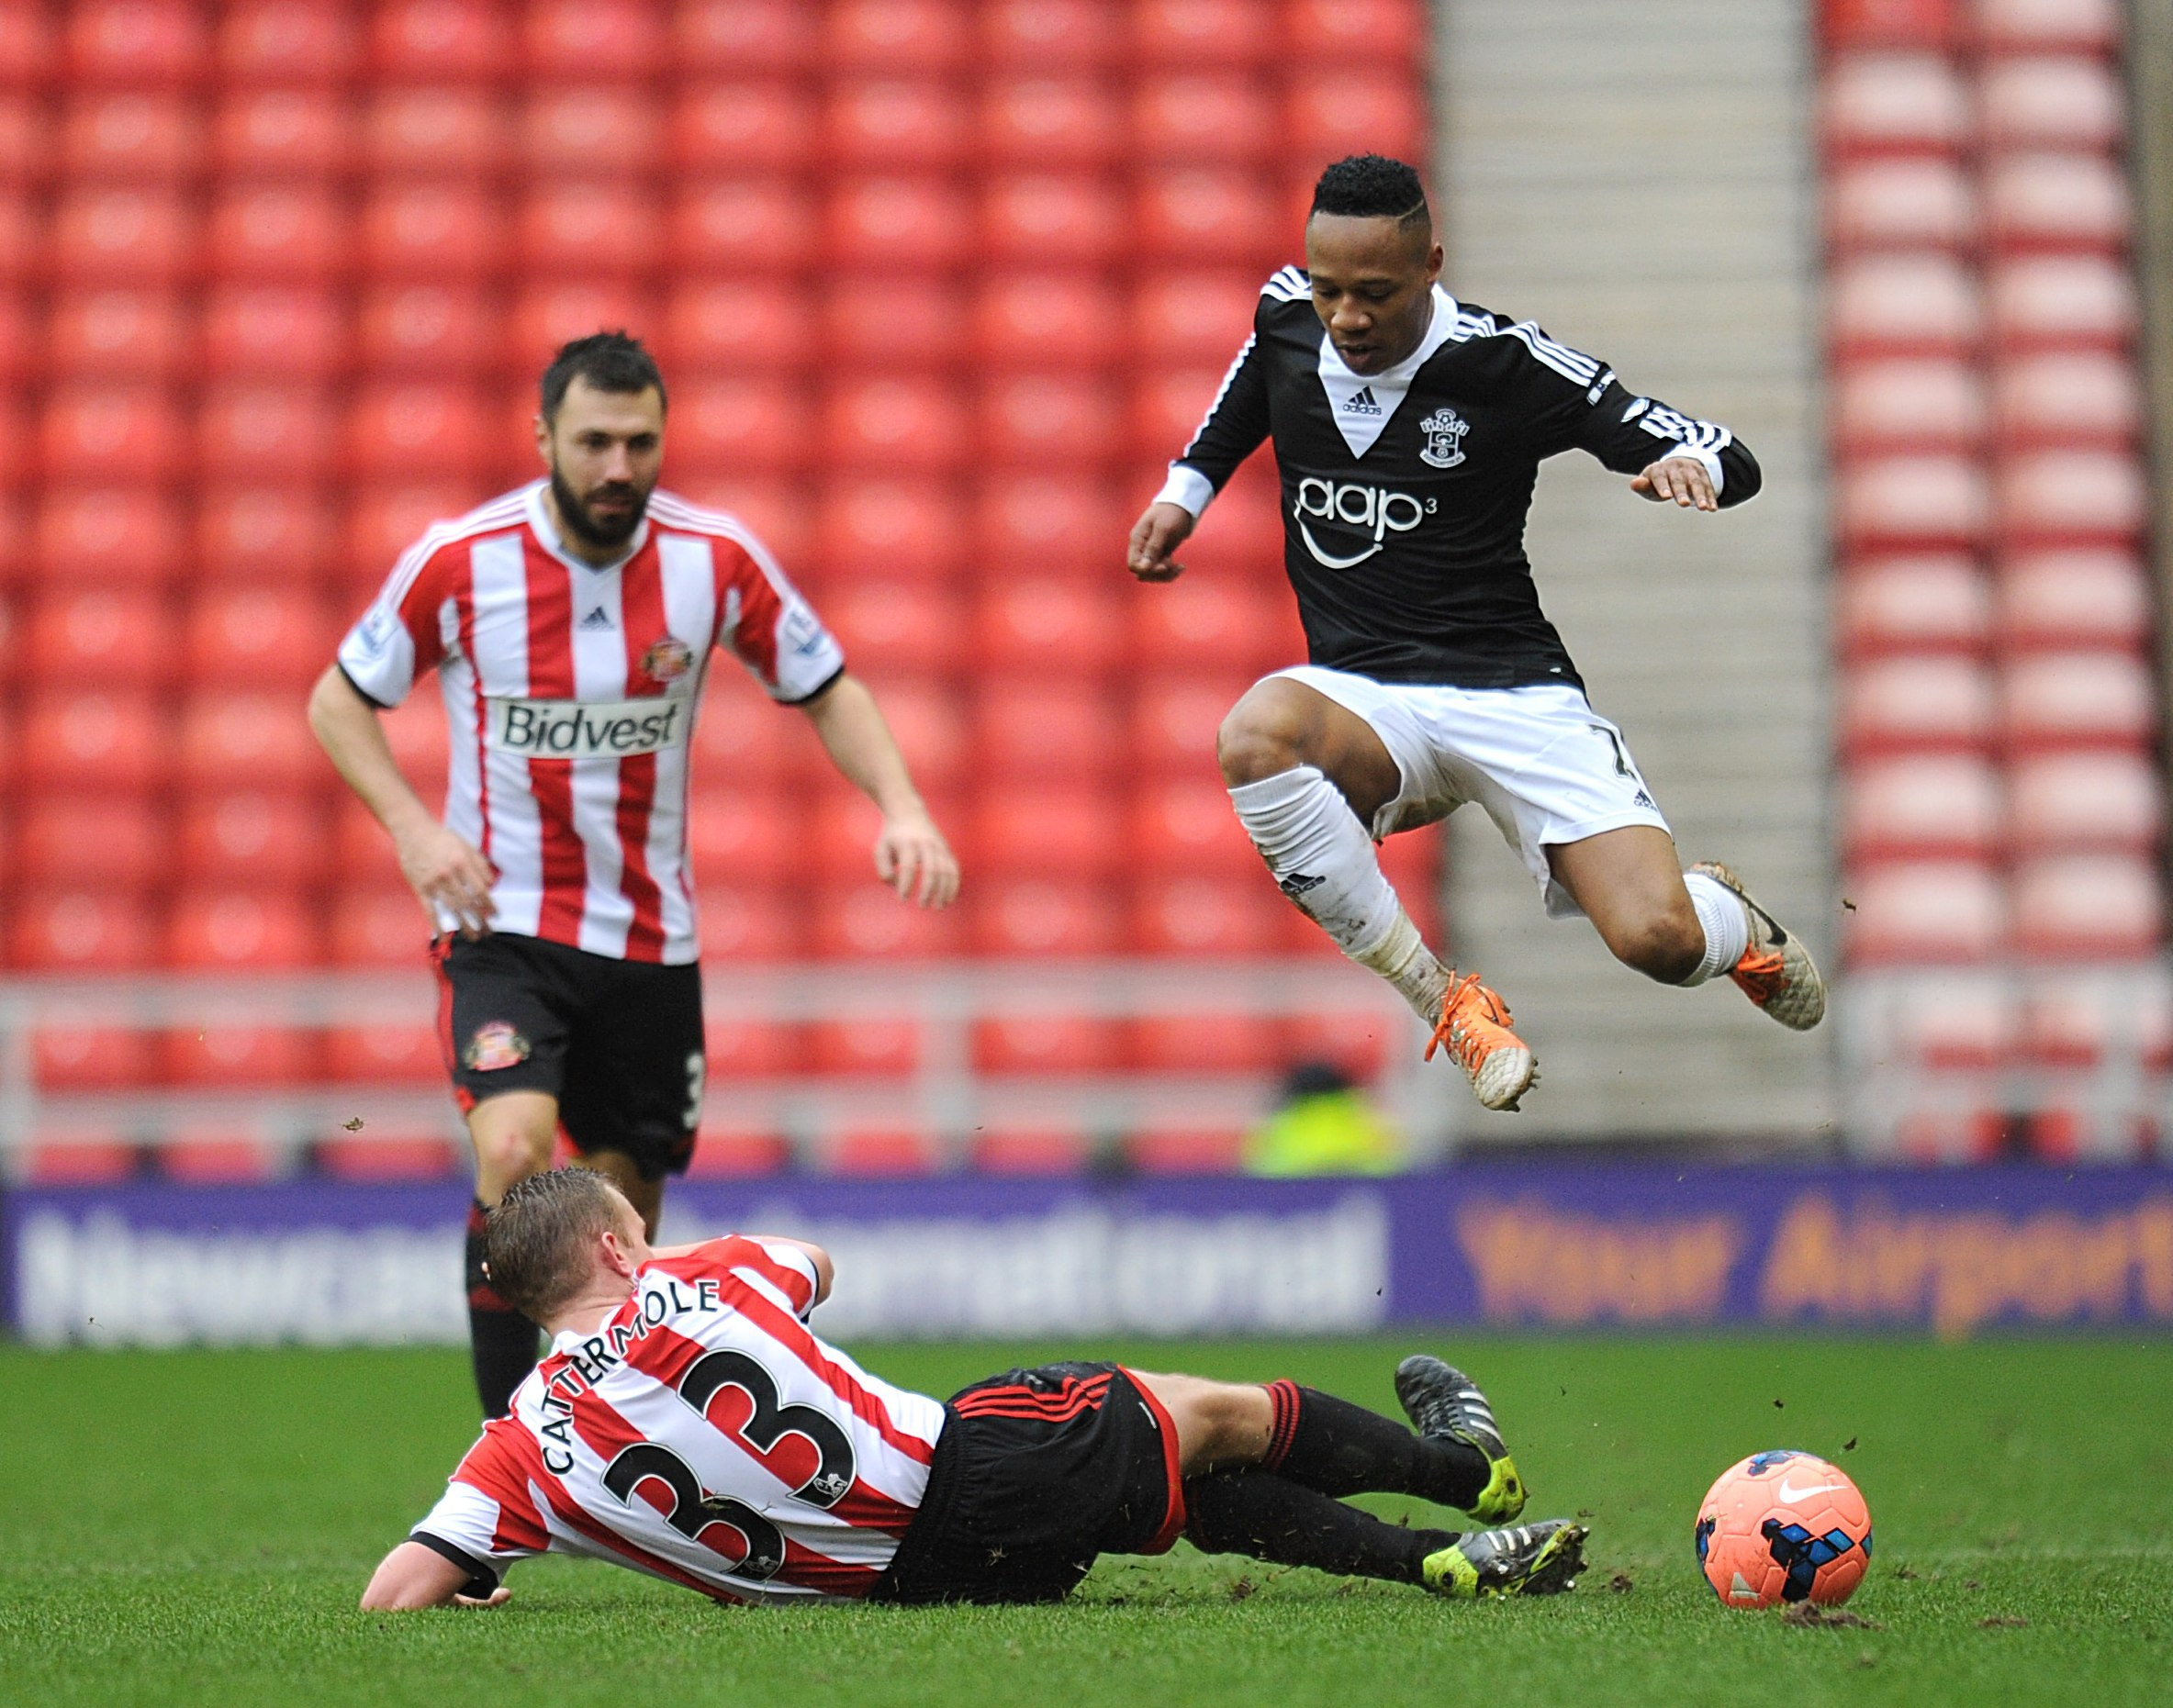 STARS OF THE SHOW: Lee Cattermole puts in a challenge on Southampton's Luke Shaw as Andrea Dossena looks on